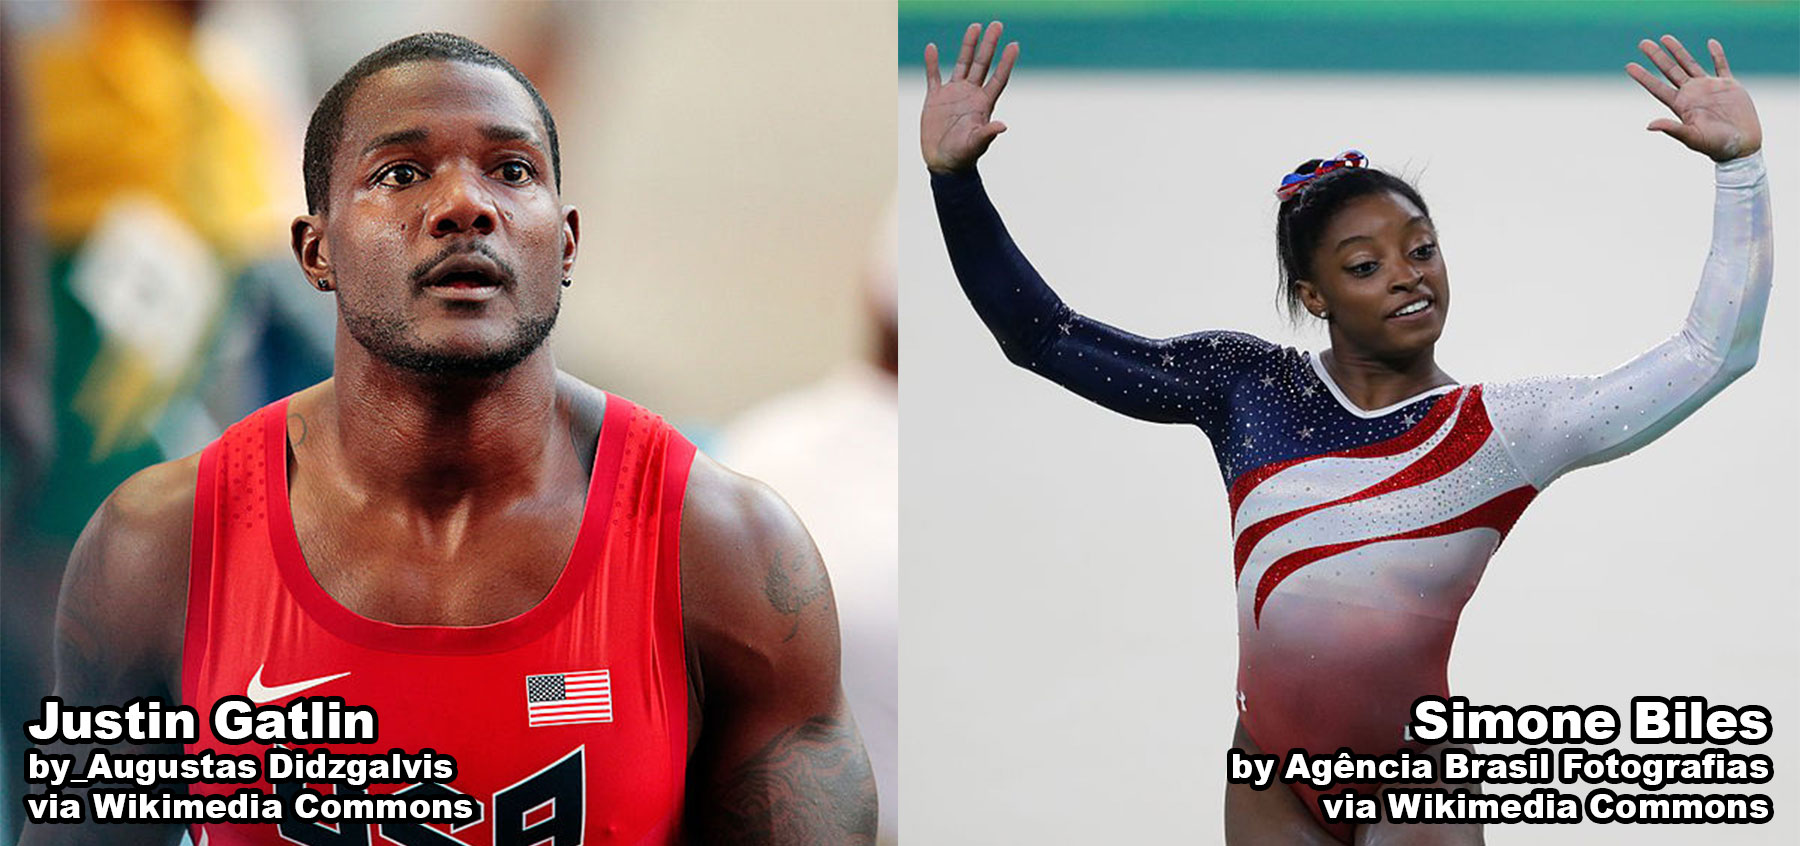 Sprinter Justin Gatlin and Gymnast Simone Biles